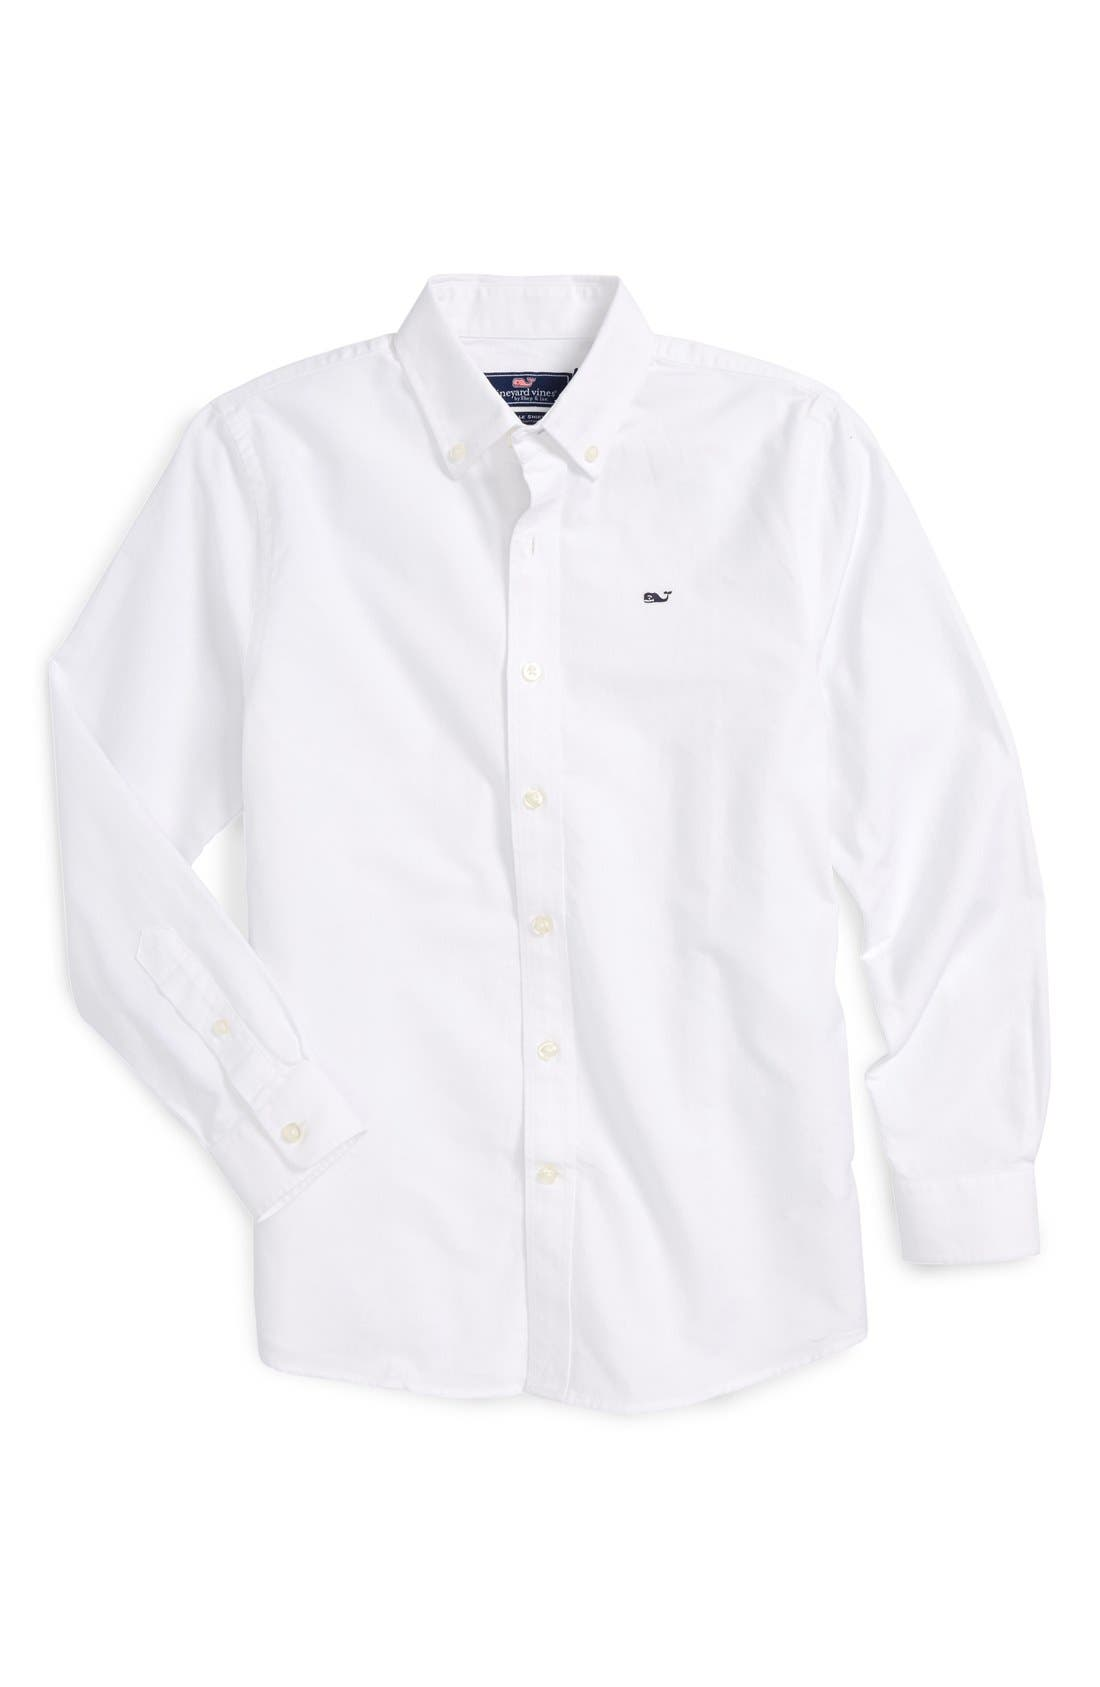 Alternate Image 1 Selected - vineyard vines Woven Oxford Shirt (Big Boys)